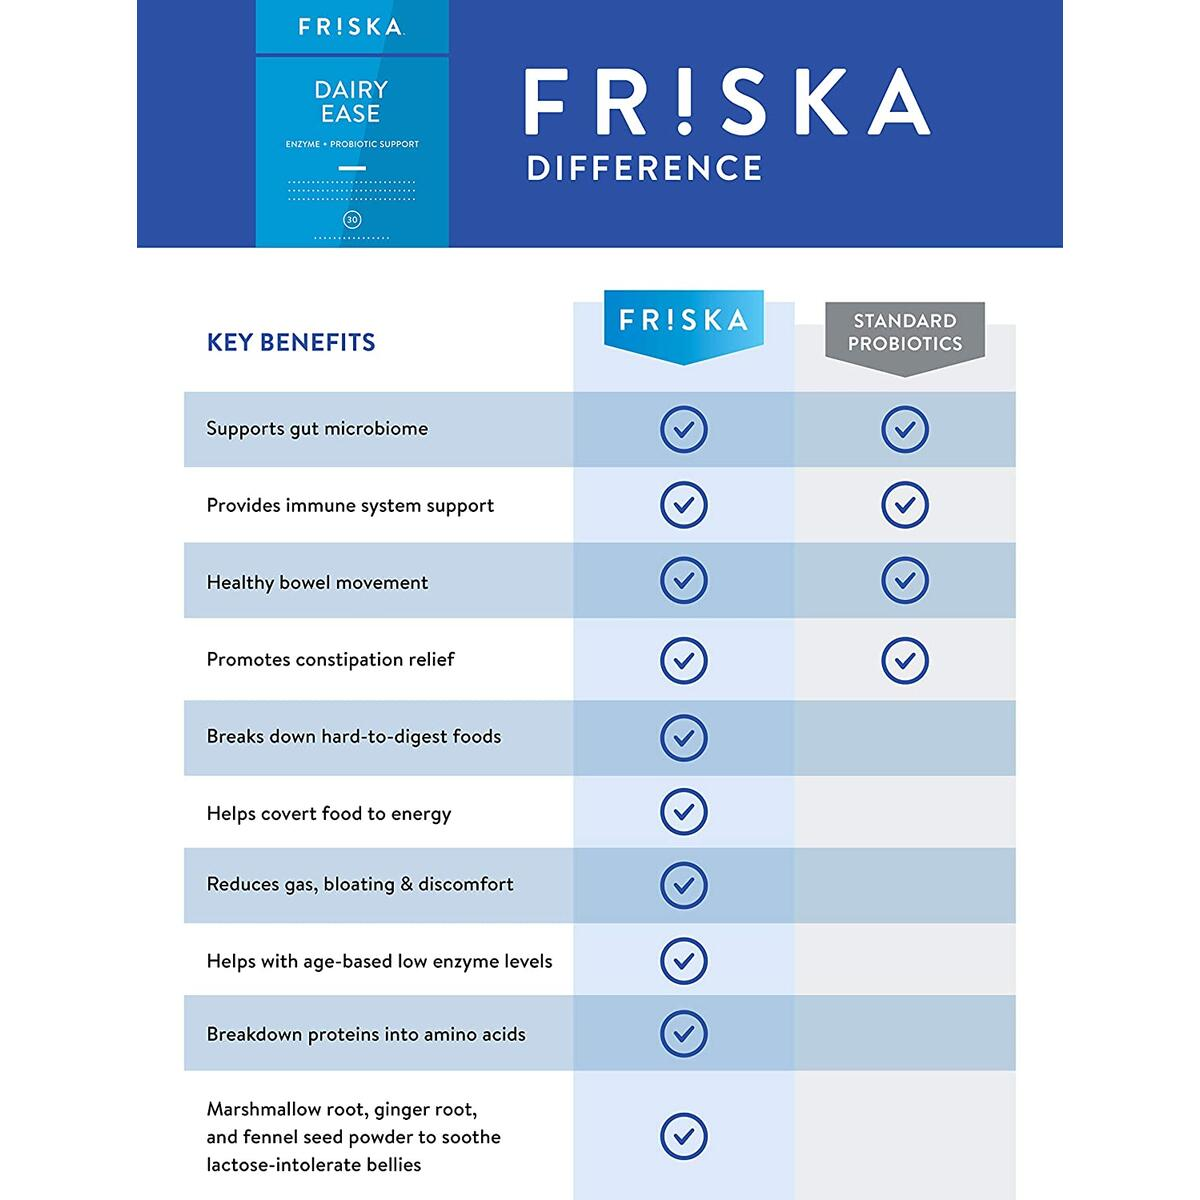 FRISKA Dairy Ease   Digestive Enzymes and Probiotics Supplement   Promotes Better Digestion   Natural Lactose Intolerance Relief & Support   30 Capsules